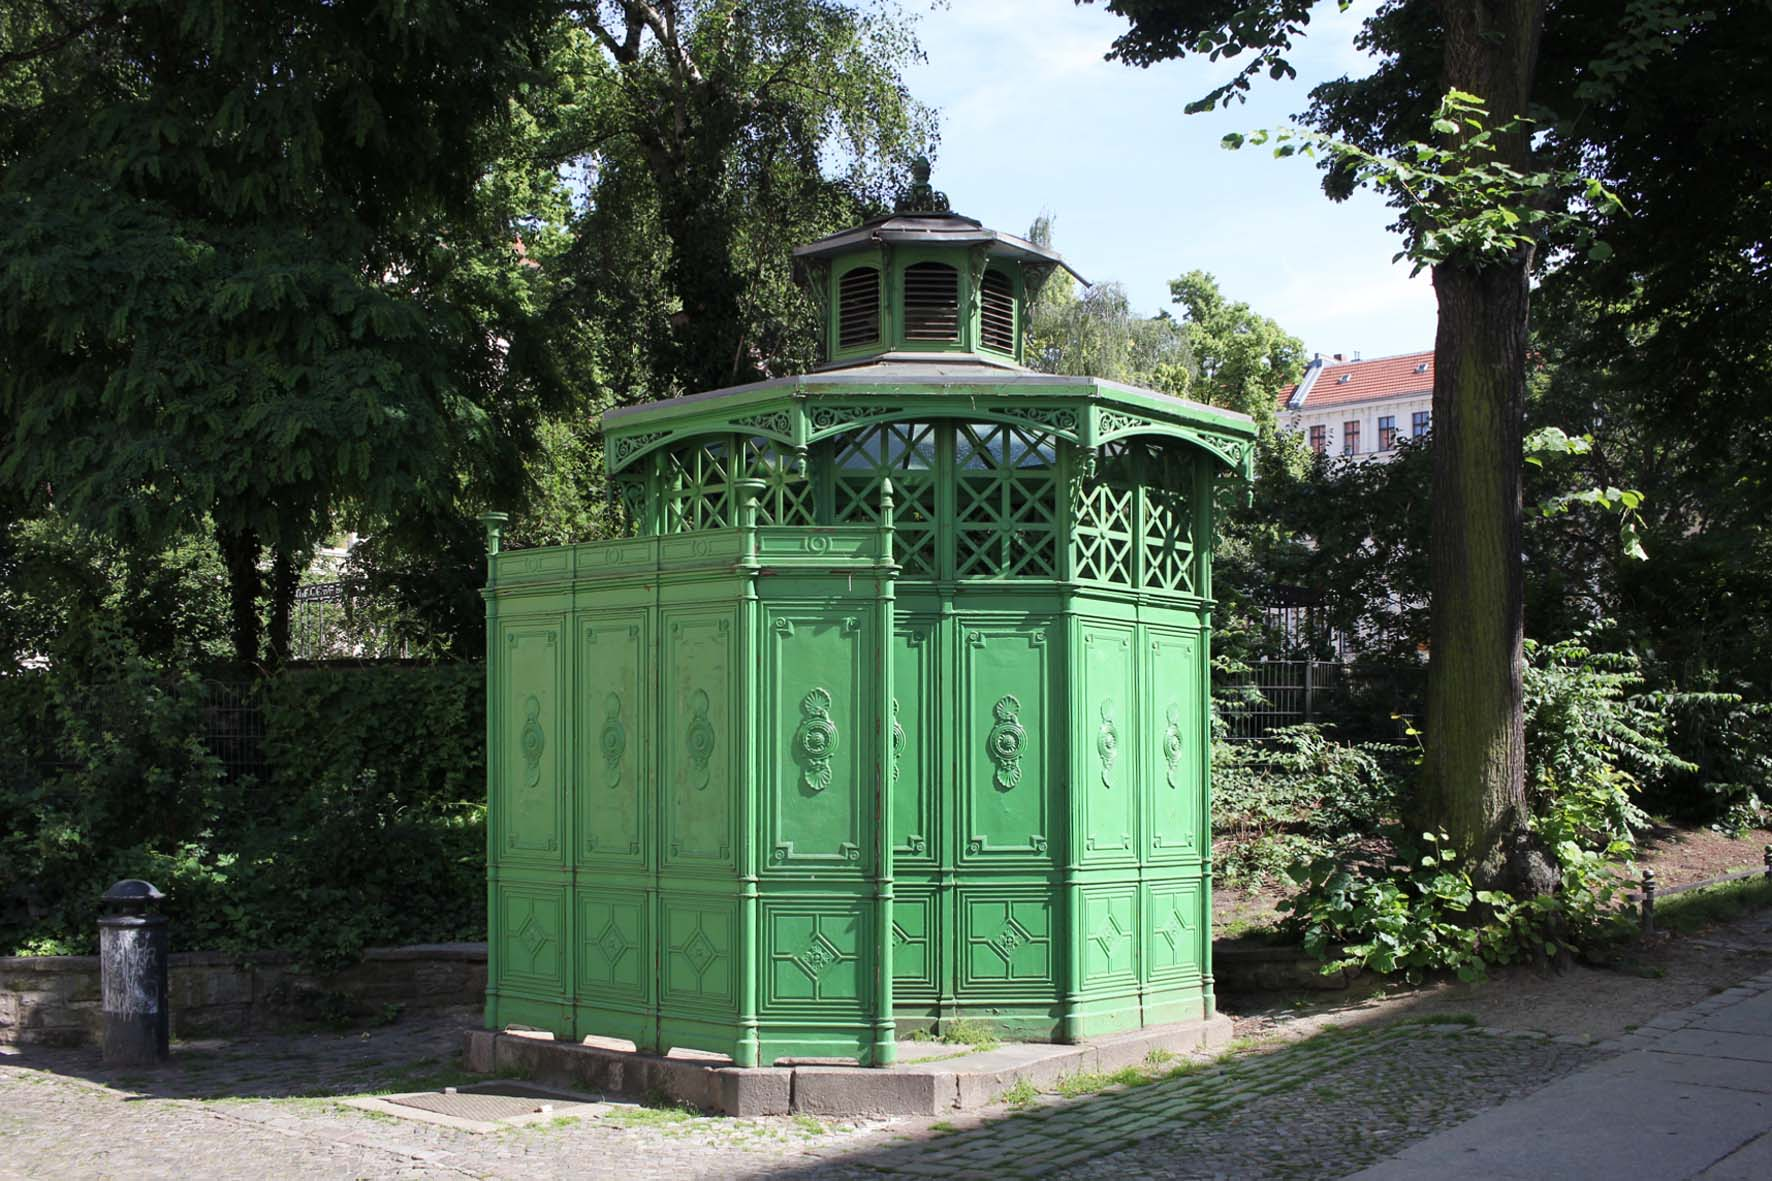 Café Achteck - Chamissoplatz - an example of Berlin's classic 19th century green cast iron public toilets